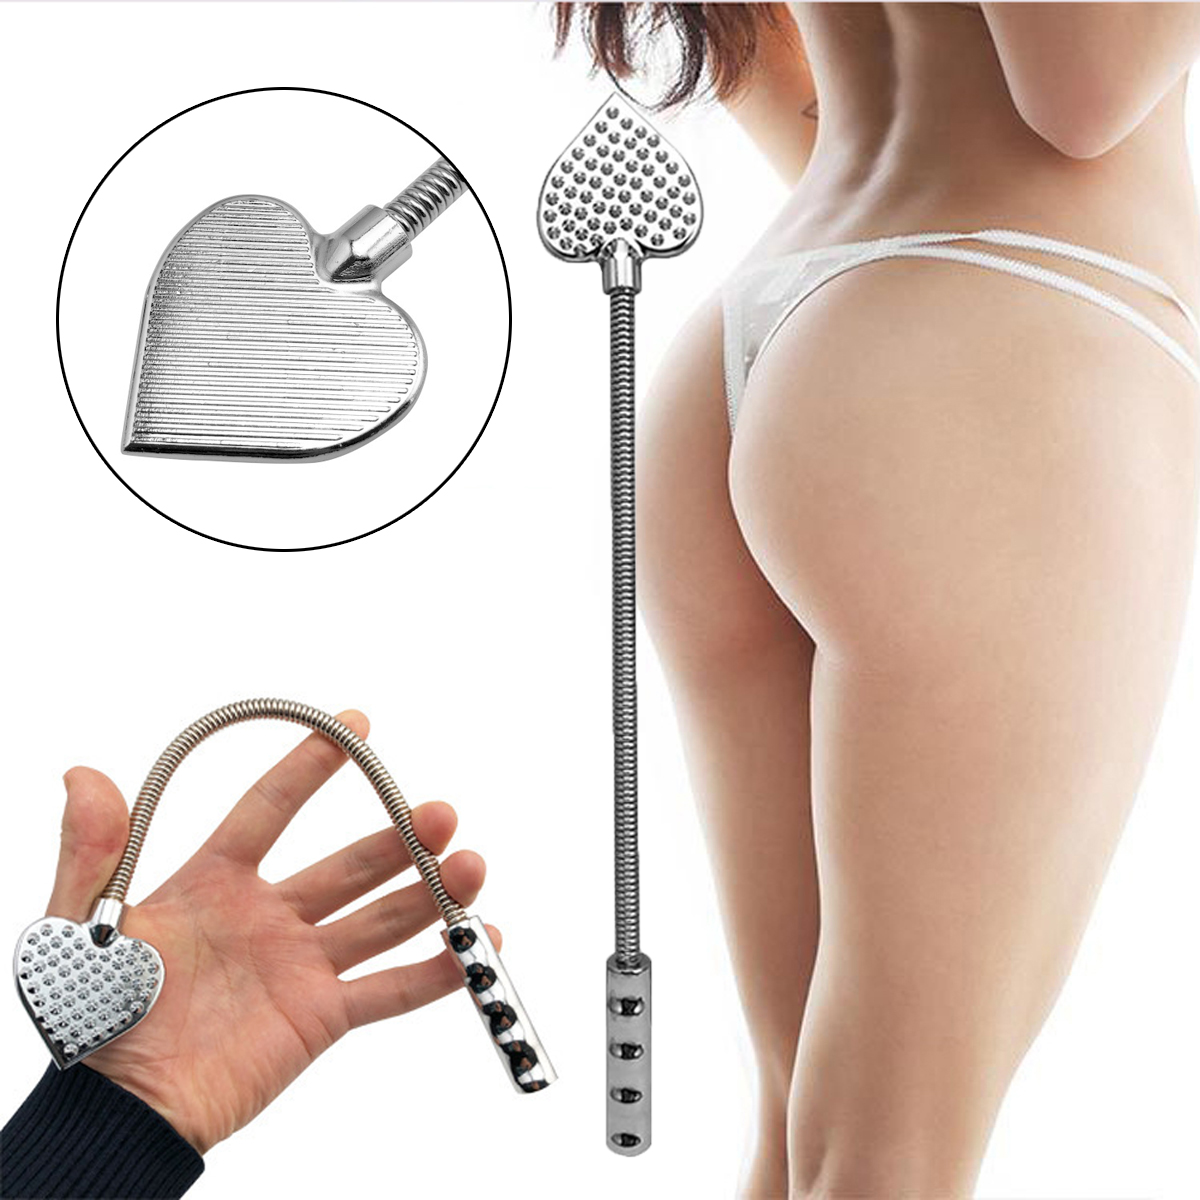 Metal Stainless Steel Spanking Whip Racket Beat Hand Butt Slap Bdsm Whips Heart-shaped Paddle Cosplay Restraint Queen Sex Toy